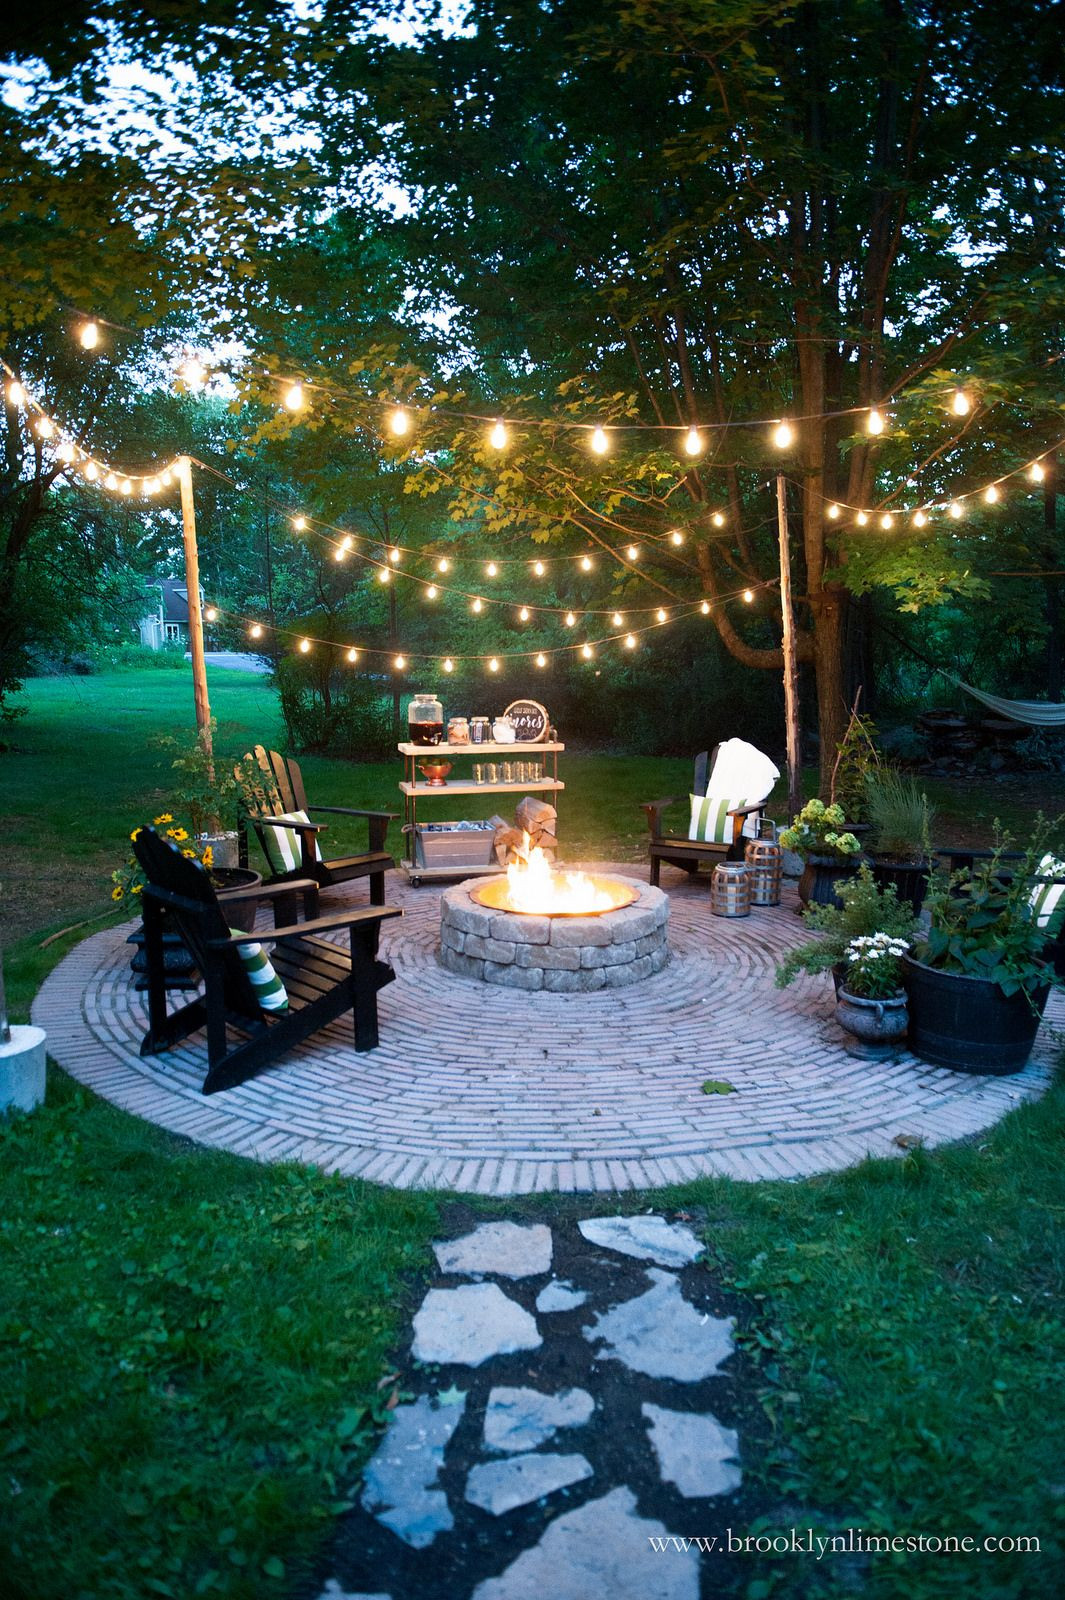 Backyard Fire Pit Party Ideas  18 Fire Pit Ideas For Your Backyard